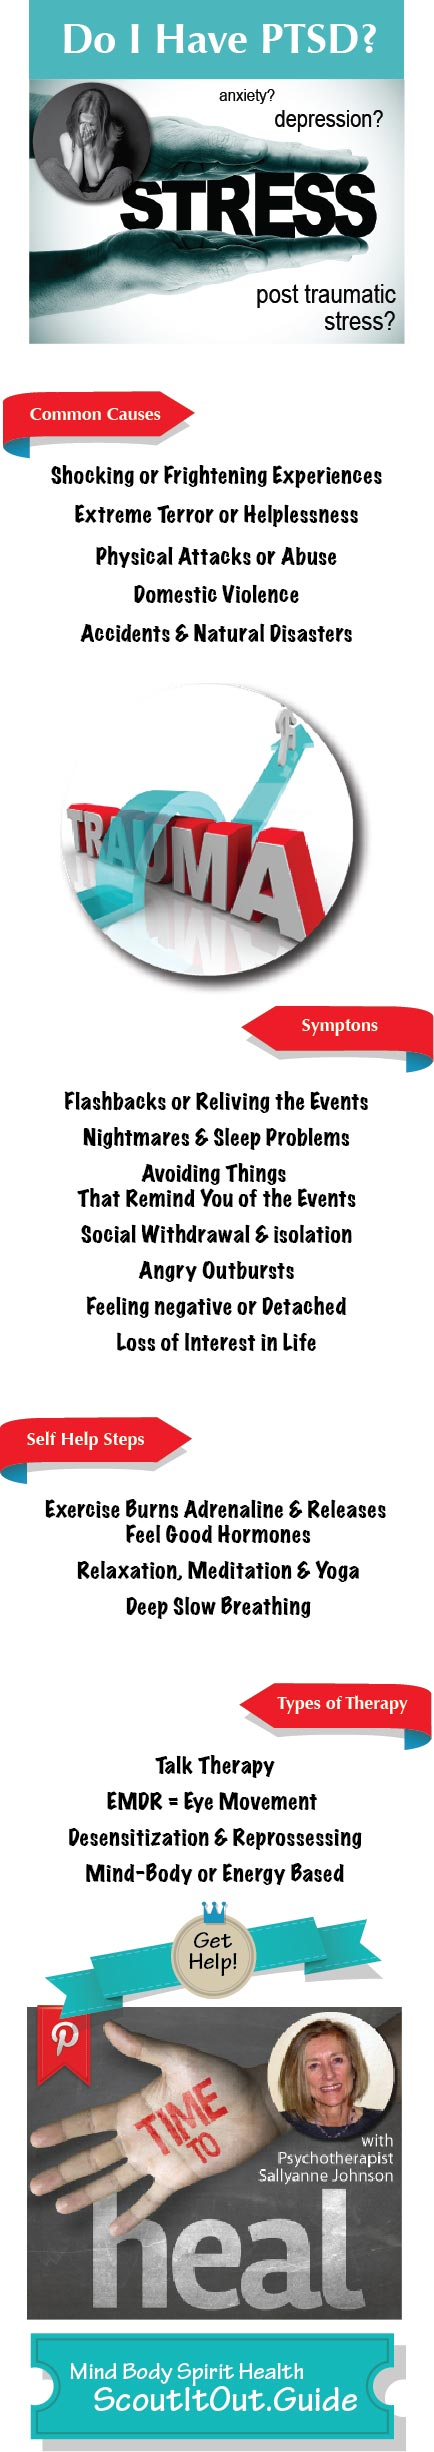 """Wondering...""""Do I have PTSD?"""" or """"What is Post Traumatic Stress Syndrome?  Psychotherapist Sallyanne Johnson of Aspen, CO shares common causes, symptoms, self help steps and types of therapies for post traumatic stress syndrome, commonly called PTSD, in today's Mind Body Spirit Health ScoutItOut.Guide expert mental health blog post."""